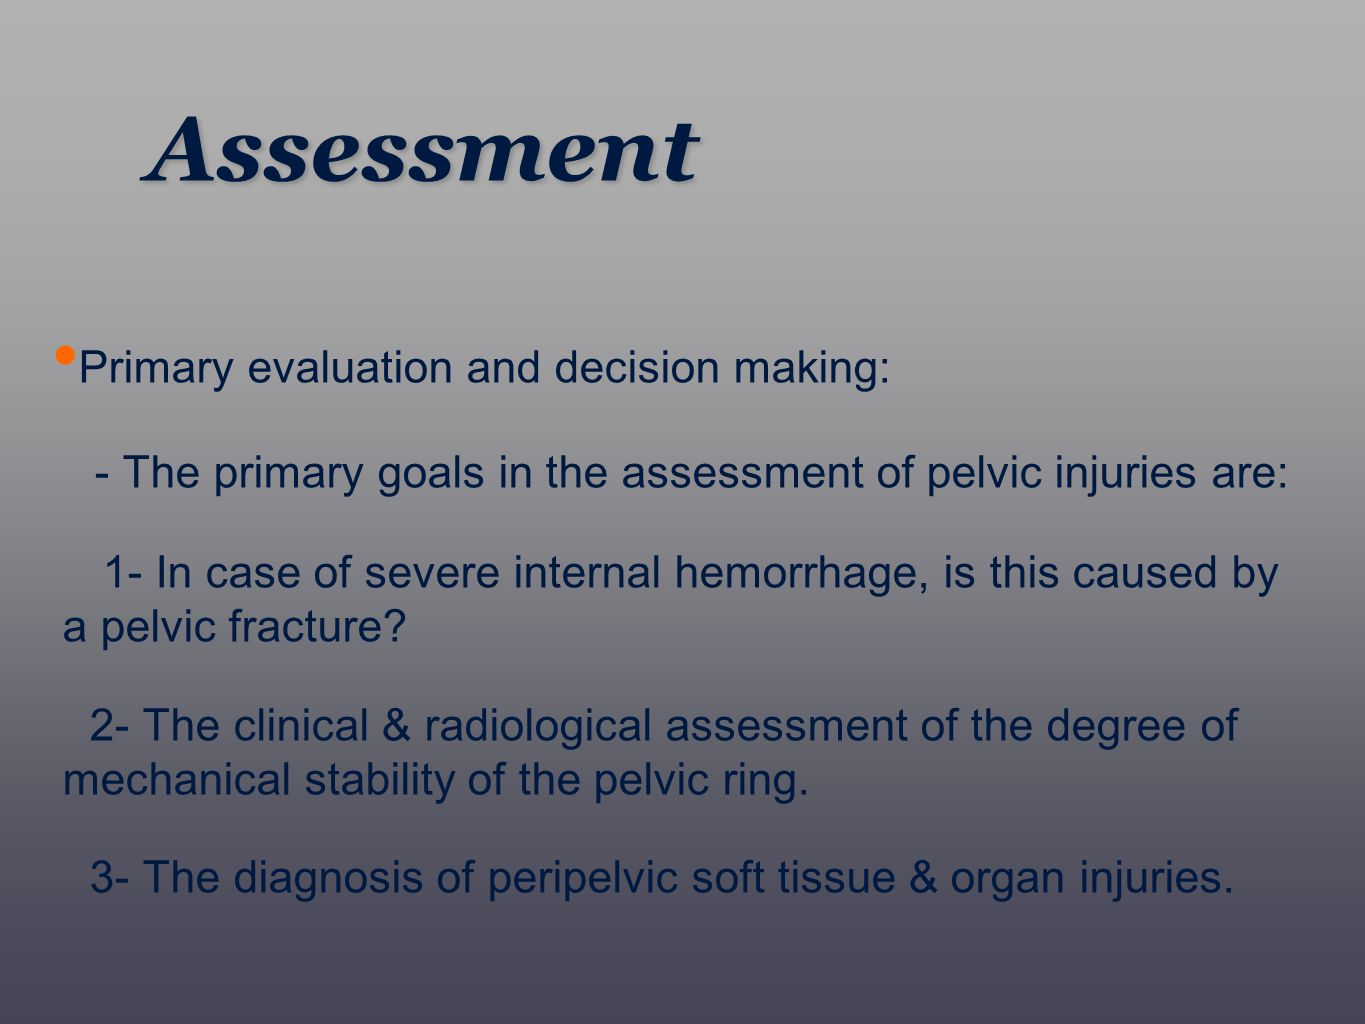 Primary evaluation and decision making: - The primary goals in the assessment of pelvic injuries are: 1- In case of severe internal hemorrhage, is thi